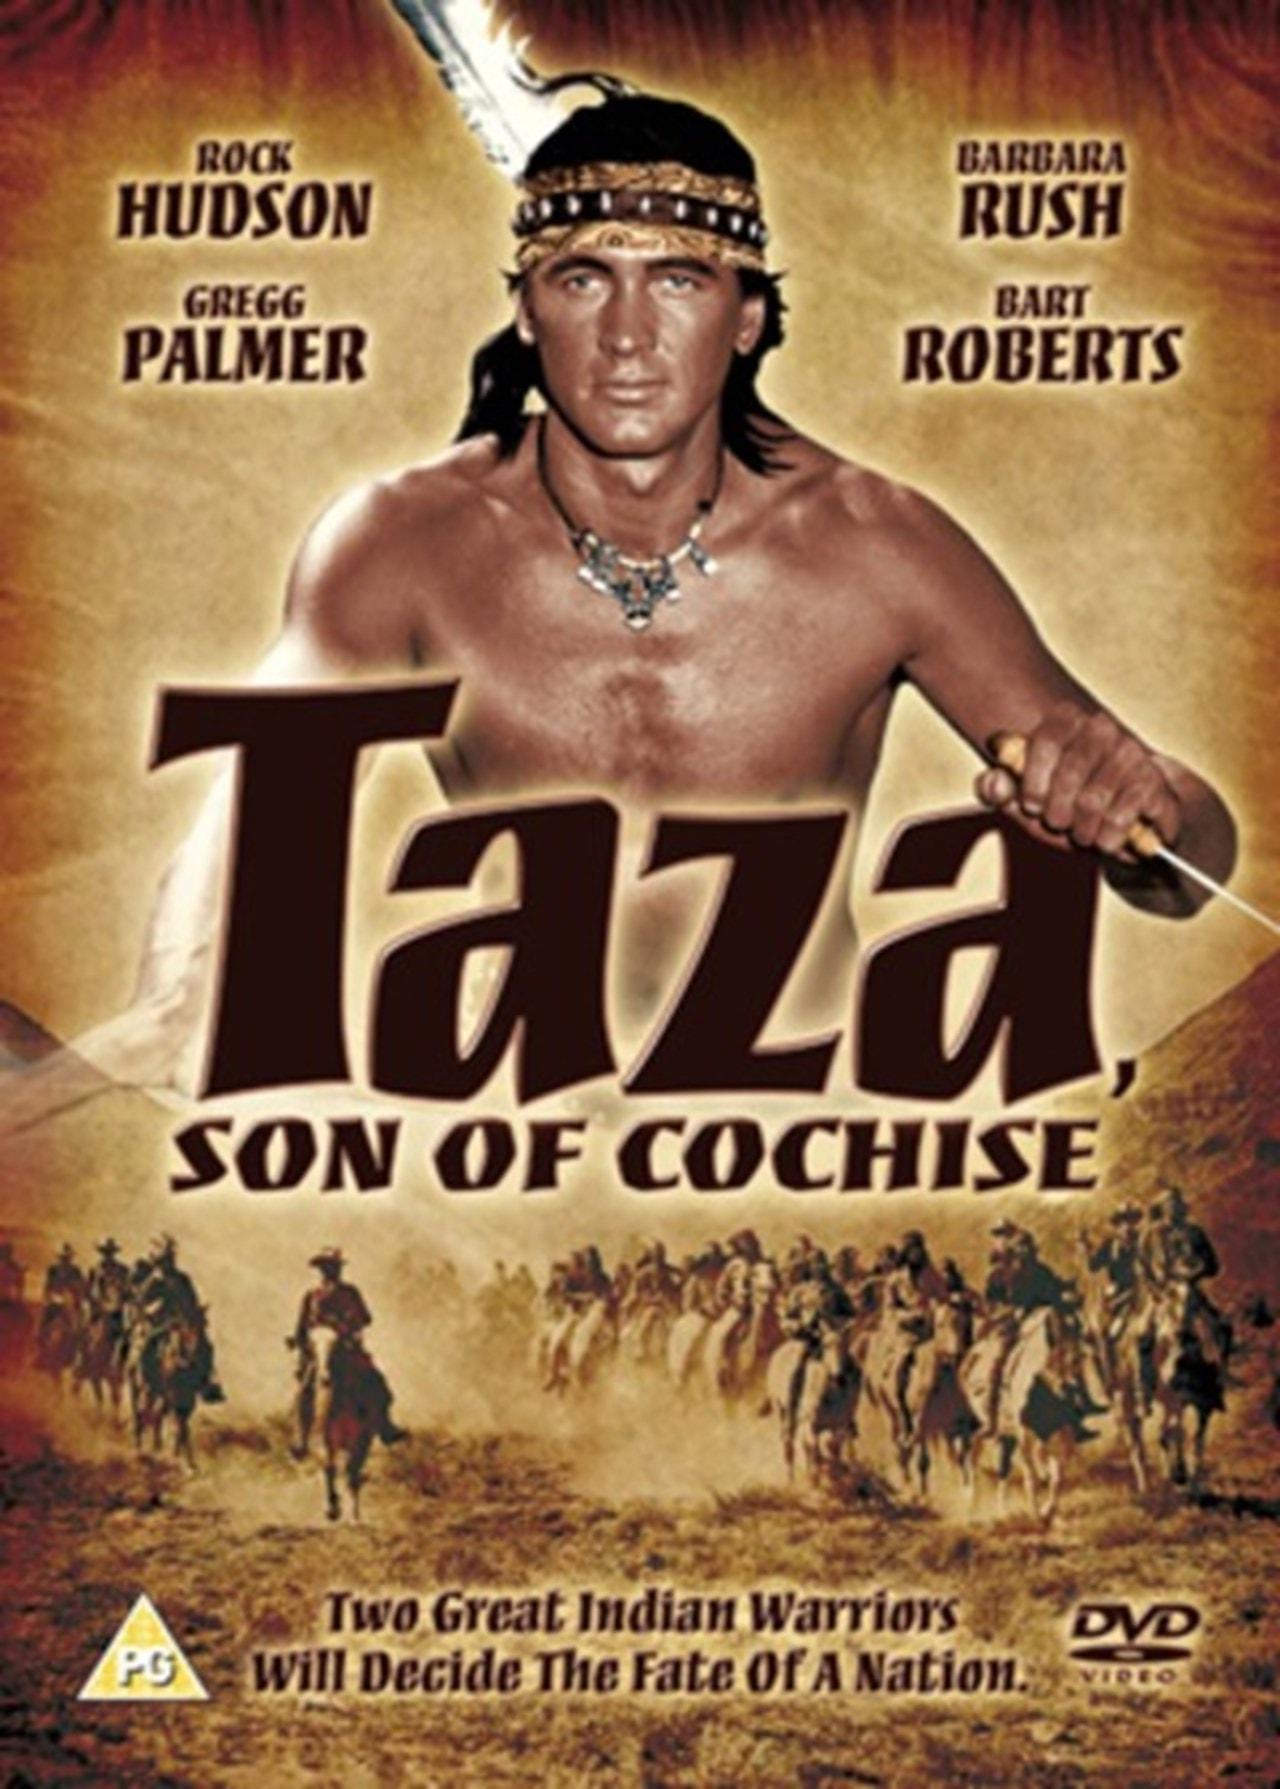 Taza, Son of Cochise - 1